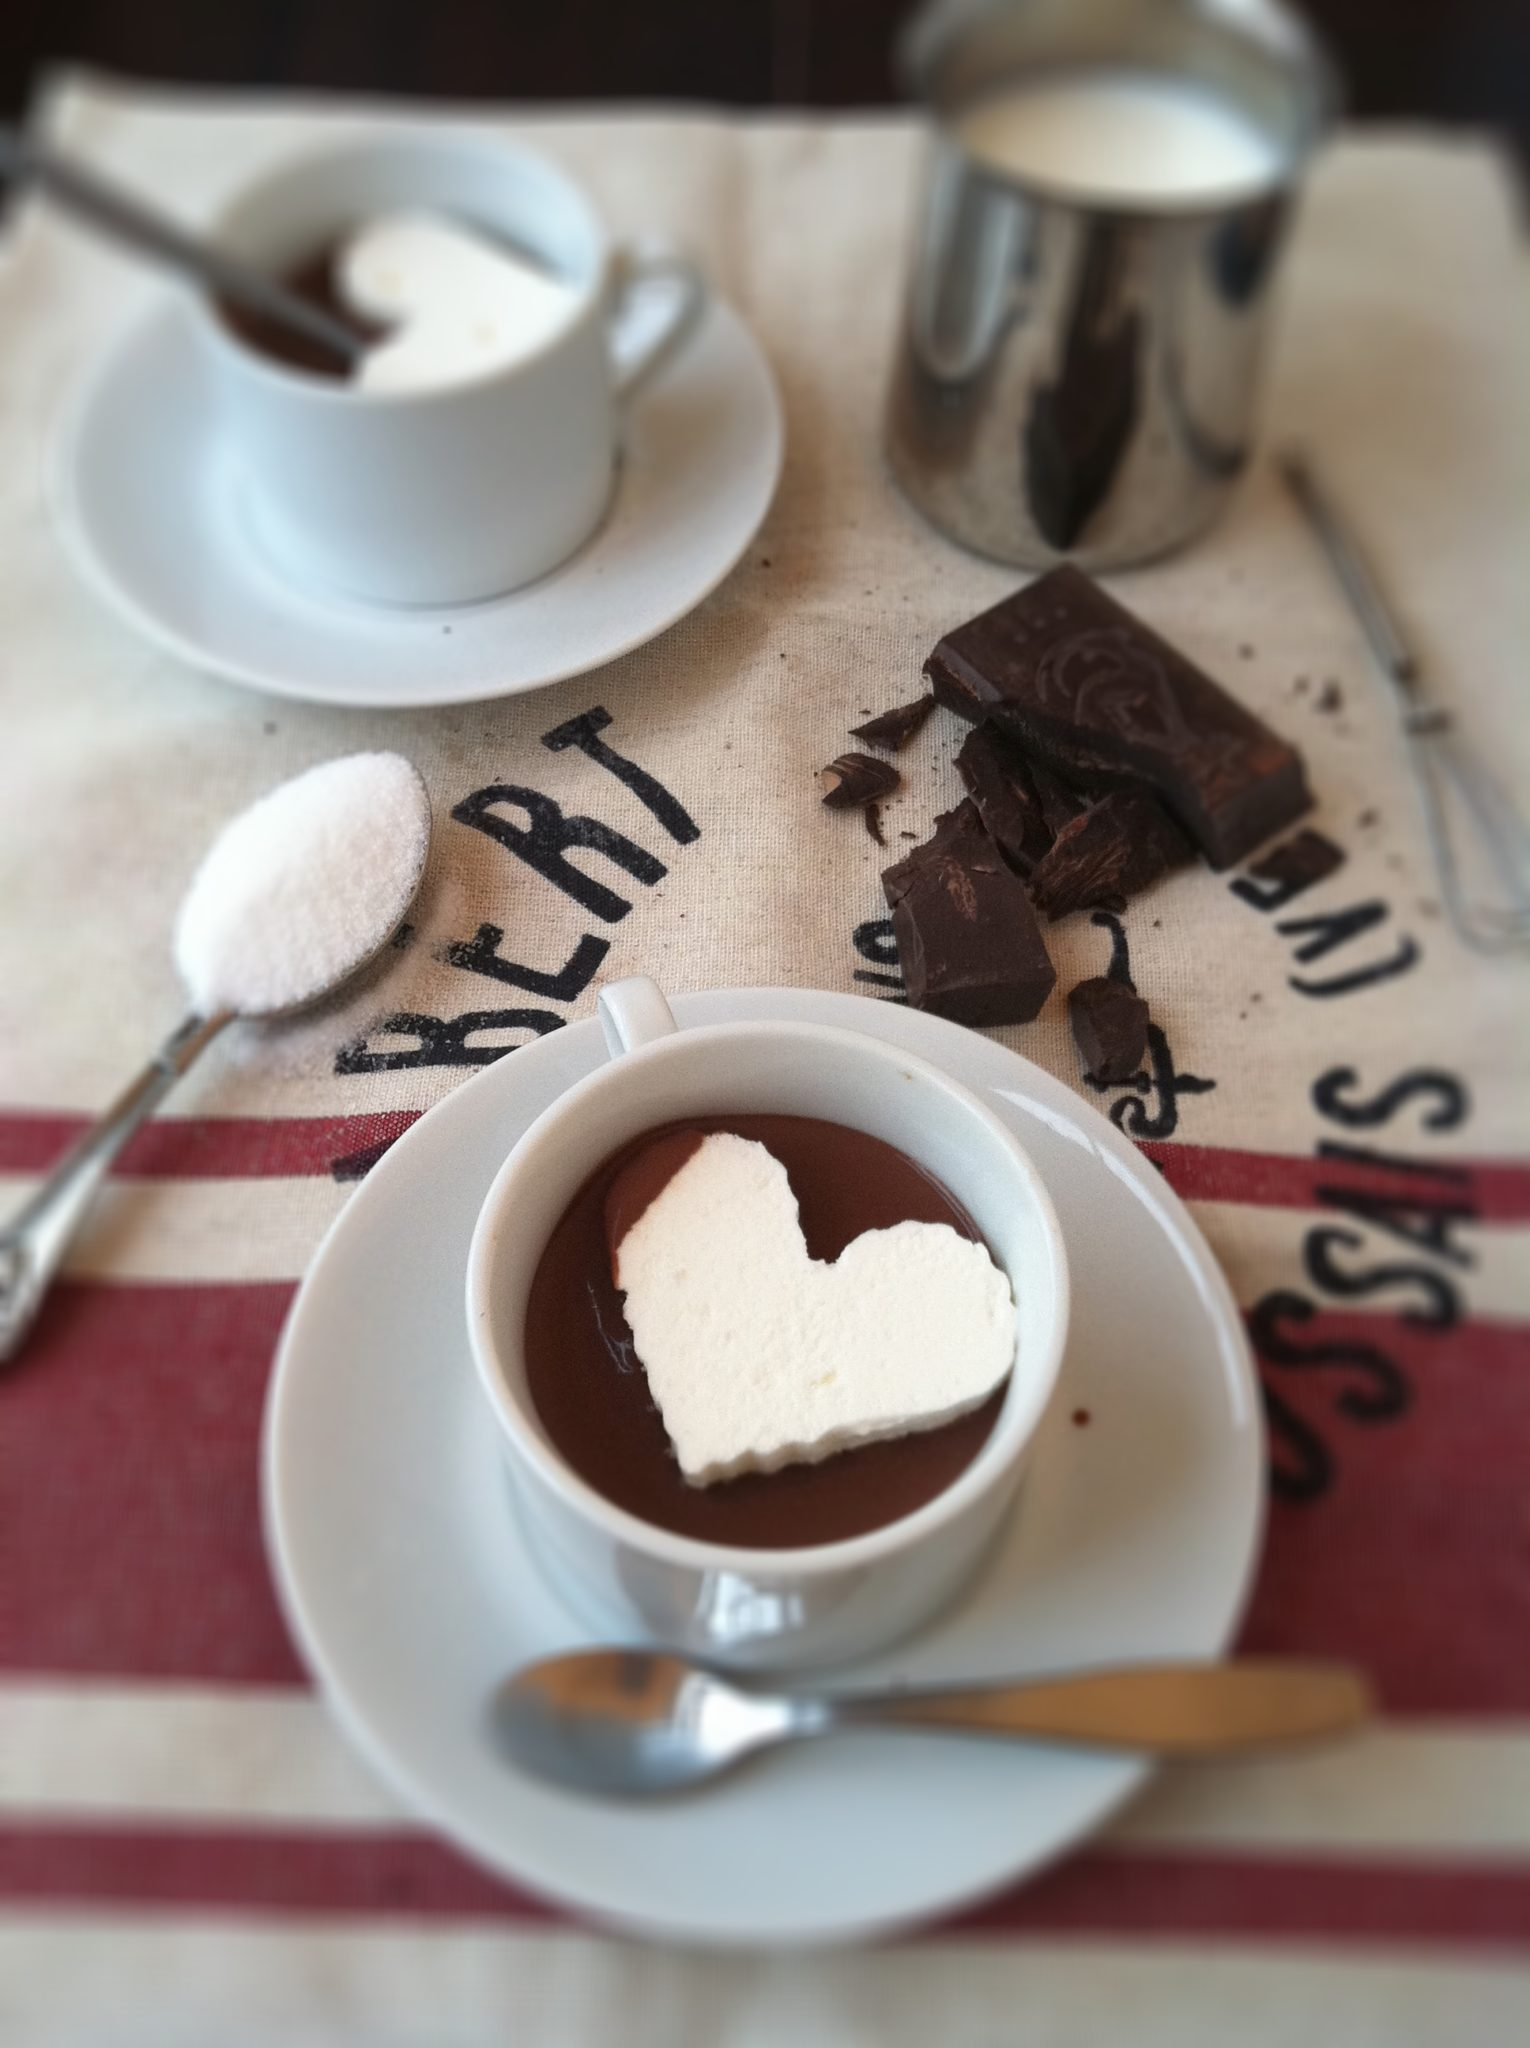 The Best Hot Chocolate Recipes - The 36th AVENUE